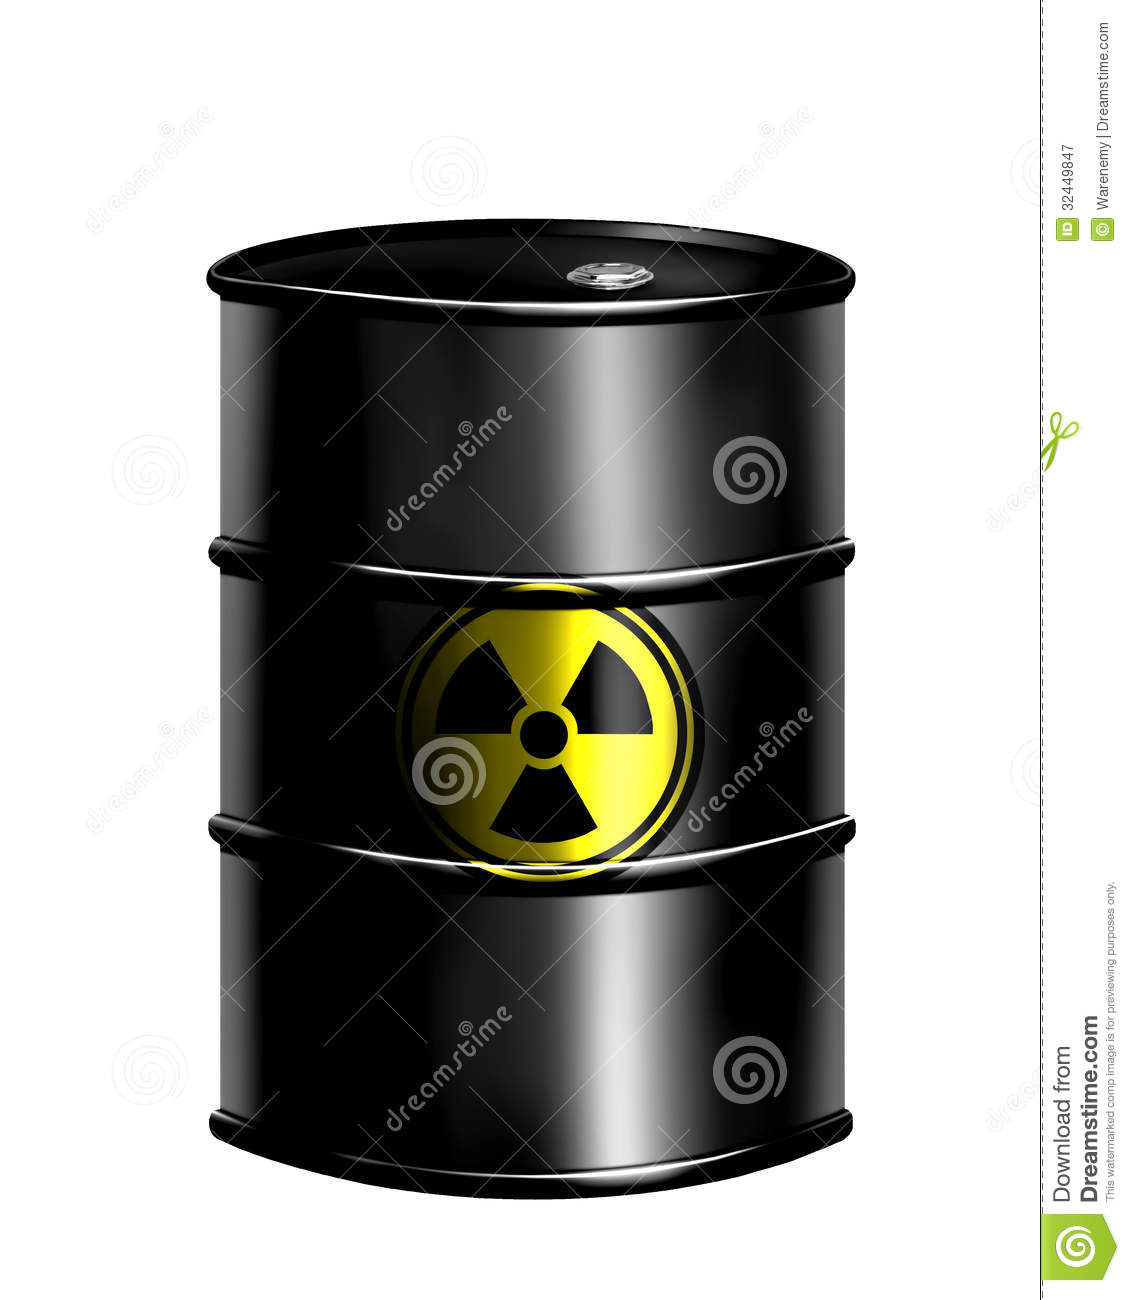 Nuclear Drum Royalty Free Stock Photography Image 32449847